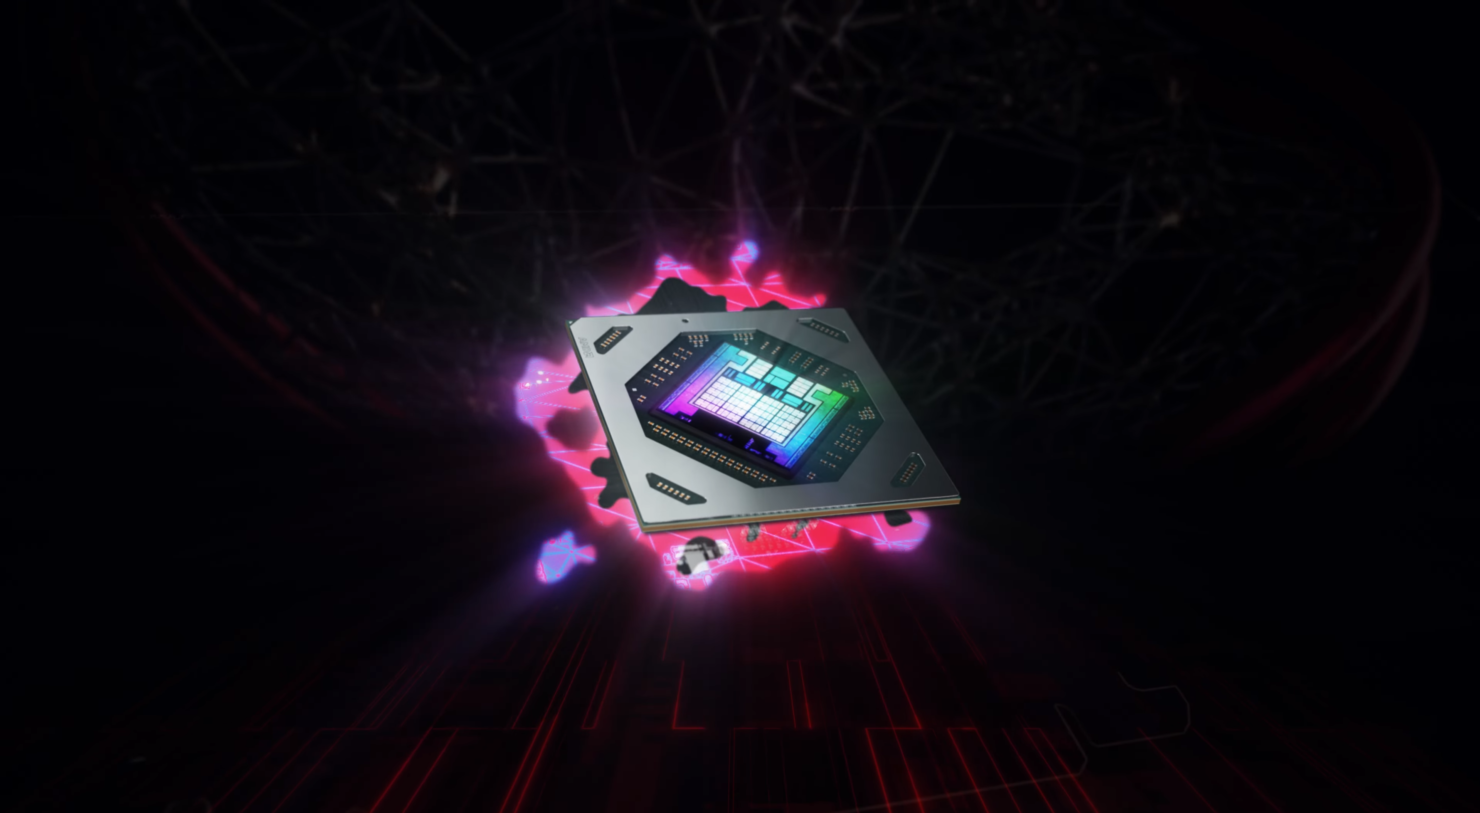 amd-reaffirms-that-radeon-rx-6000m-rdna-2-mobile-gpus-are-on-track-for-q2-2021-launch